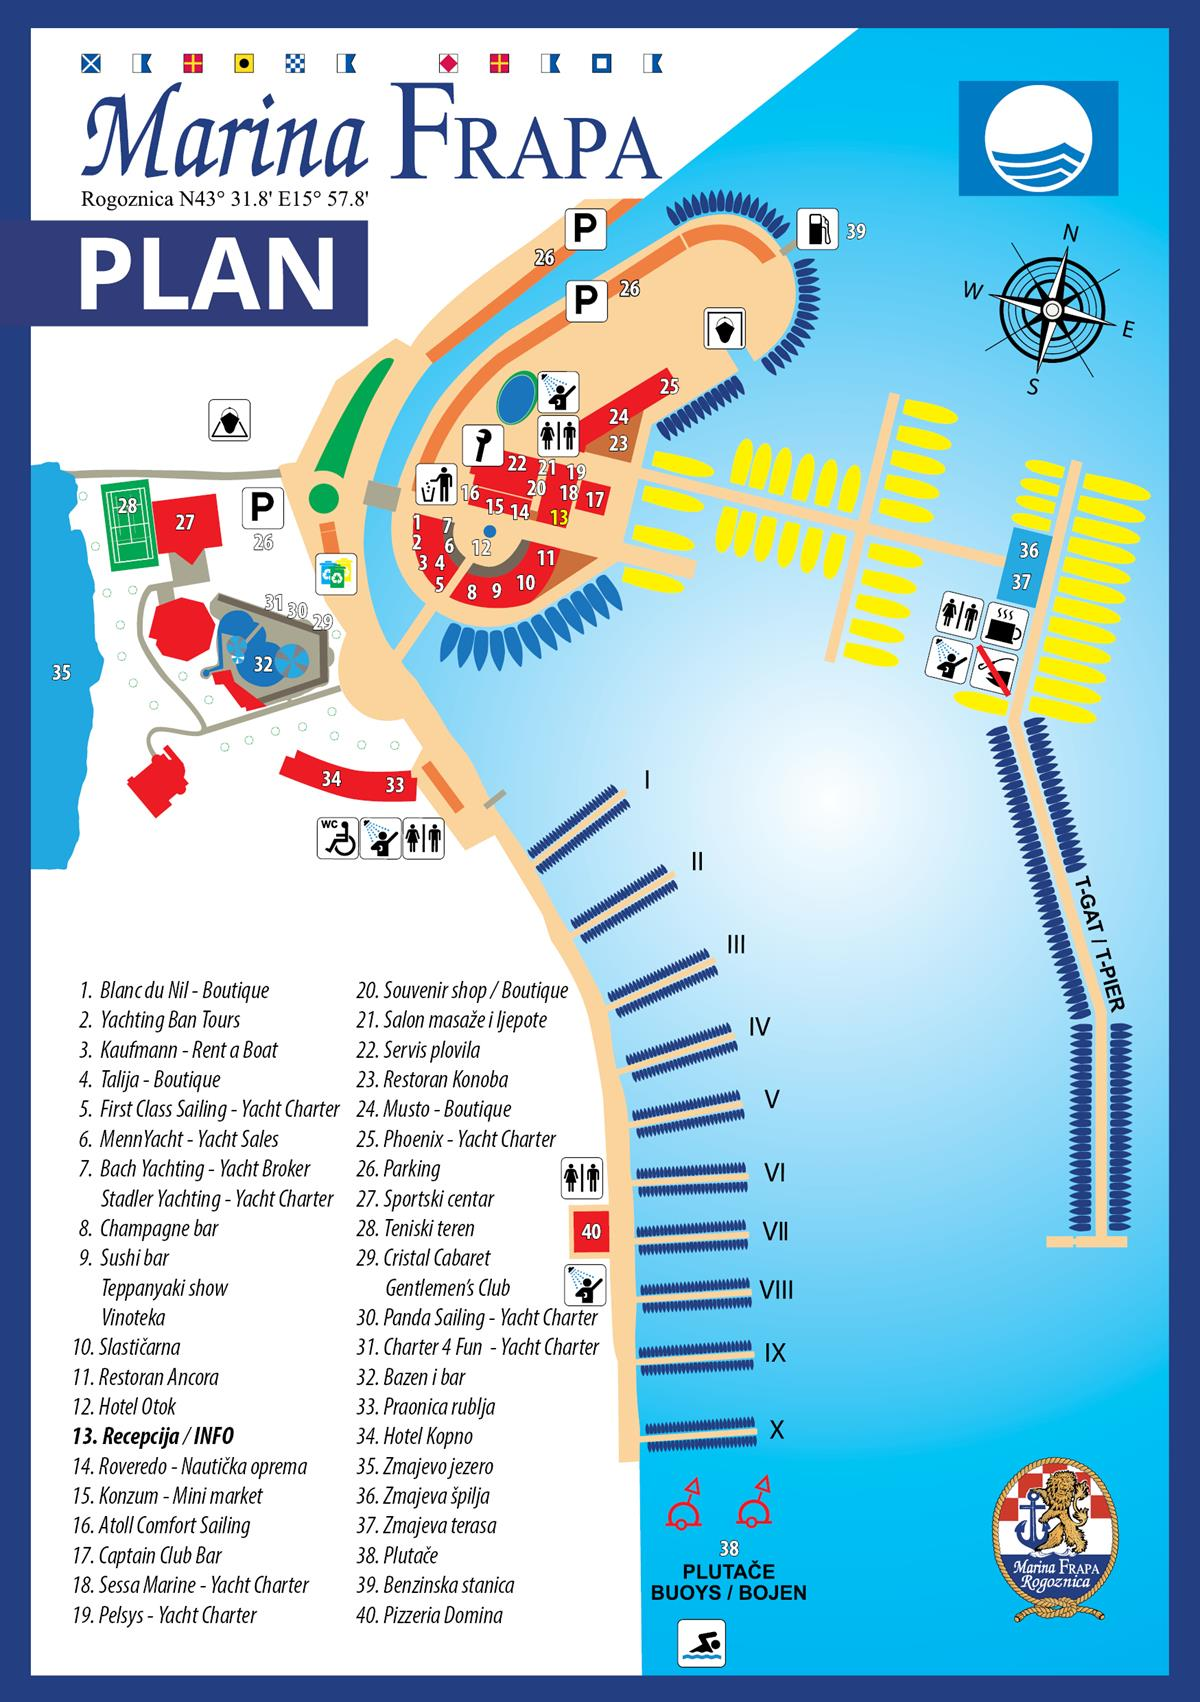 Plan - Marina Frapa Resort Rogoznica - new